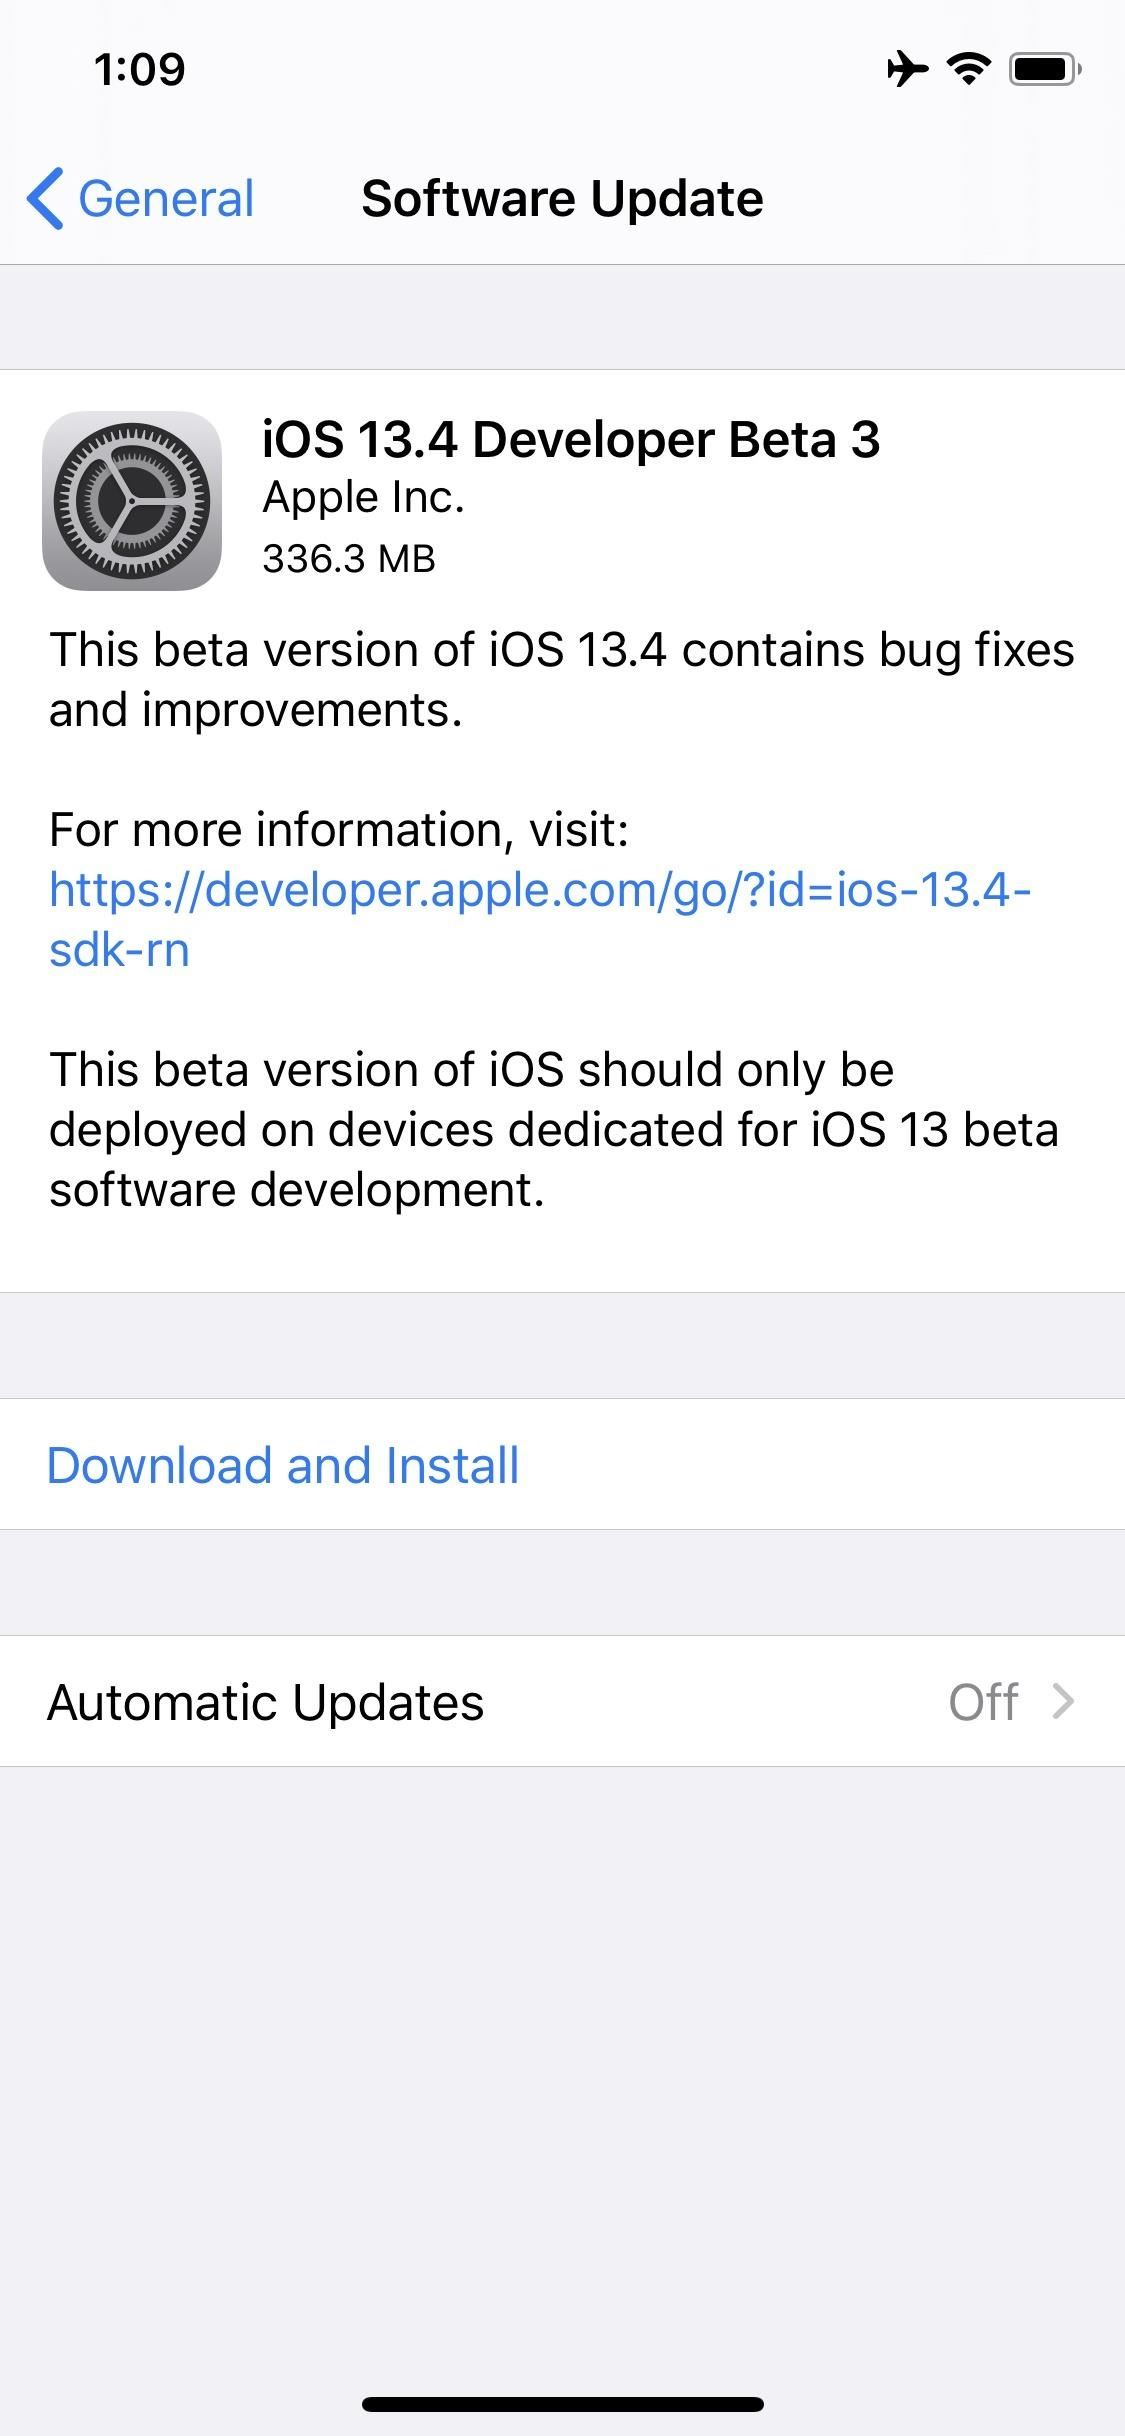 Apple Releases iOS 13.4 Developer Beta 3 for iPhone